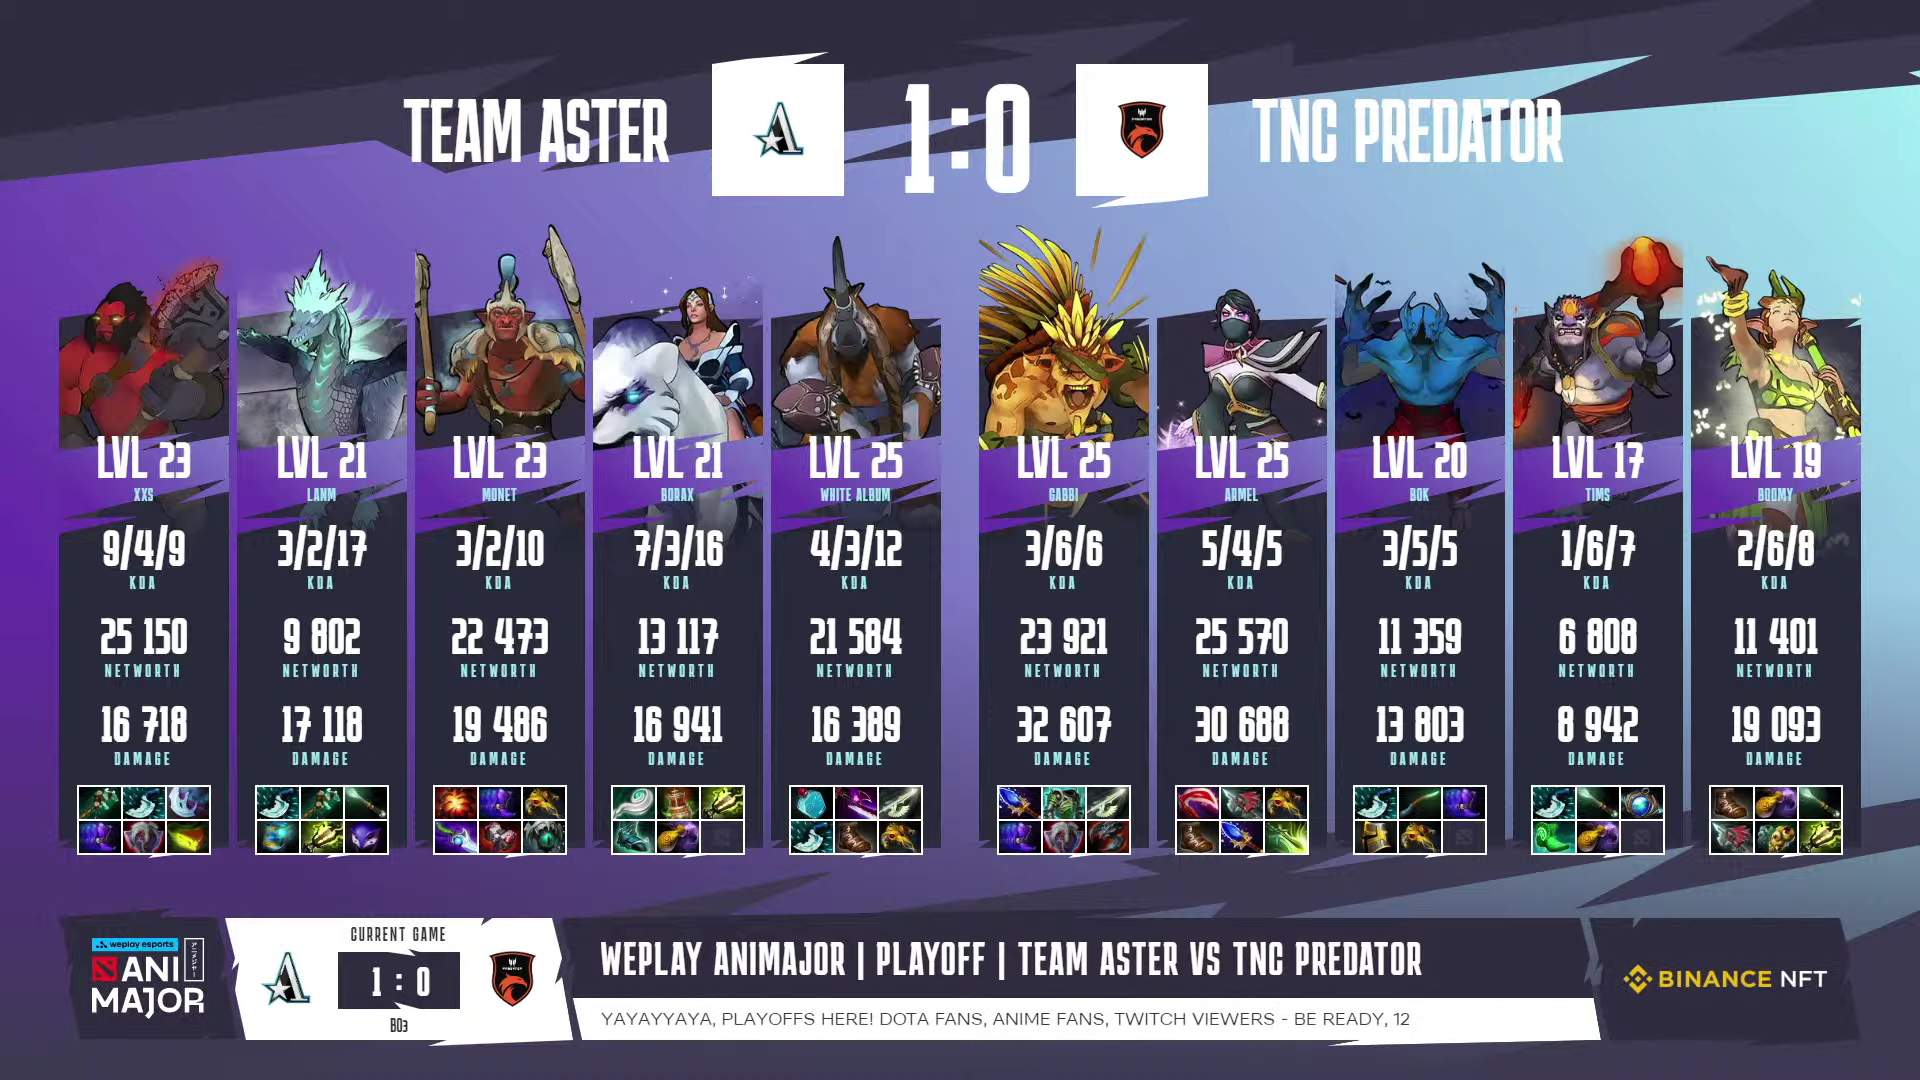 2021-WePlay-AniMajor-Lower-Bracket-TNC-def-Team-Aster-Game-1 TNC pulls off epic come-from-behind win to advance in AniMajor playoffs DOTA 2 ESports News  - philippine sports news